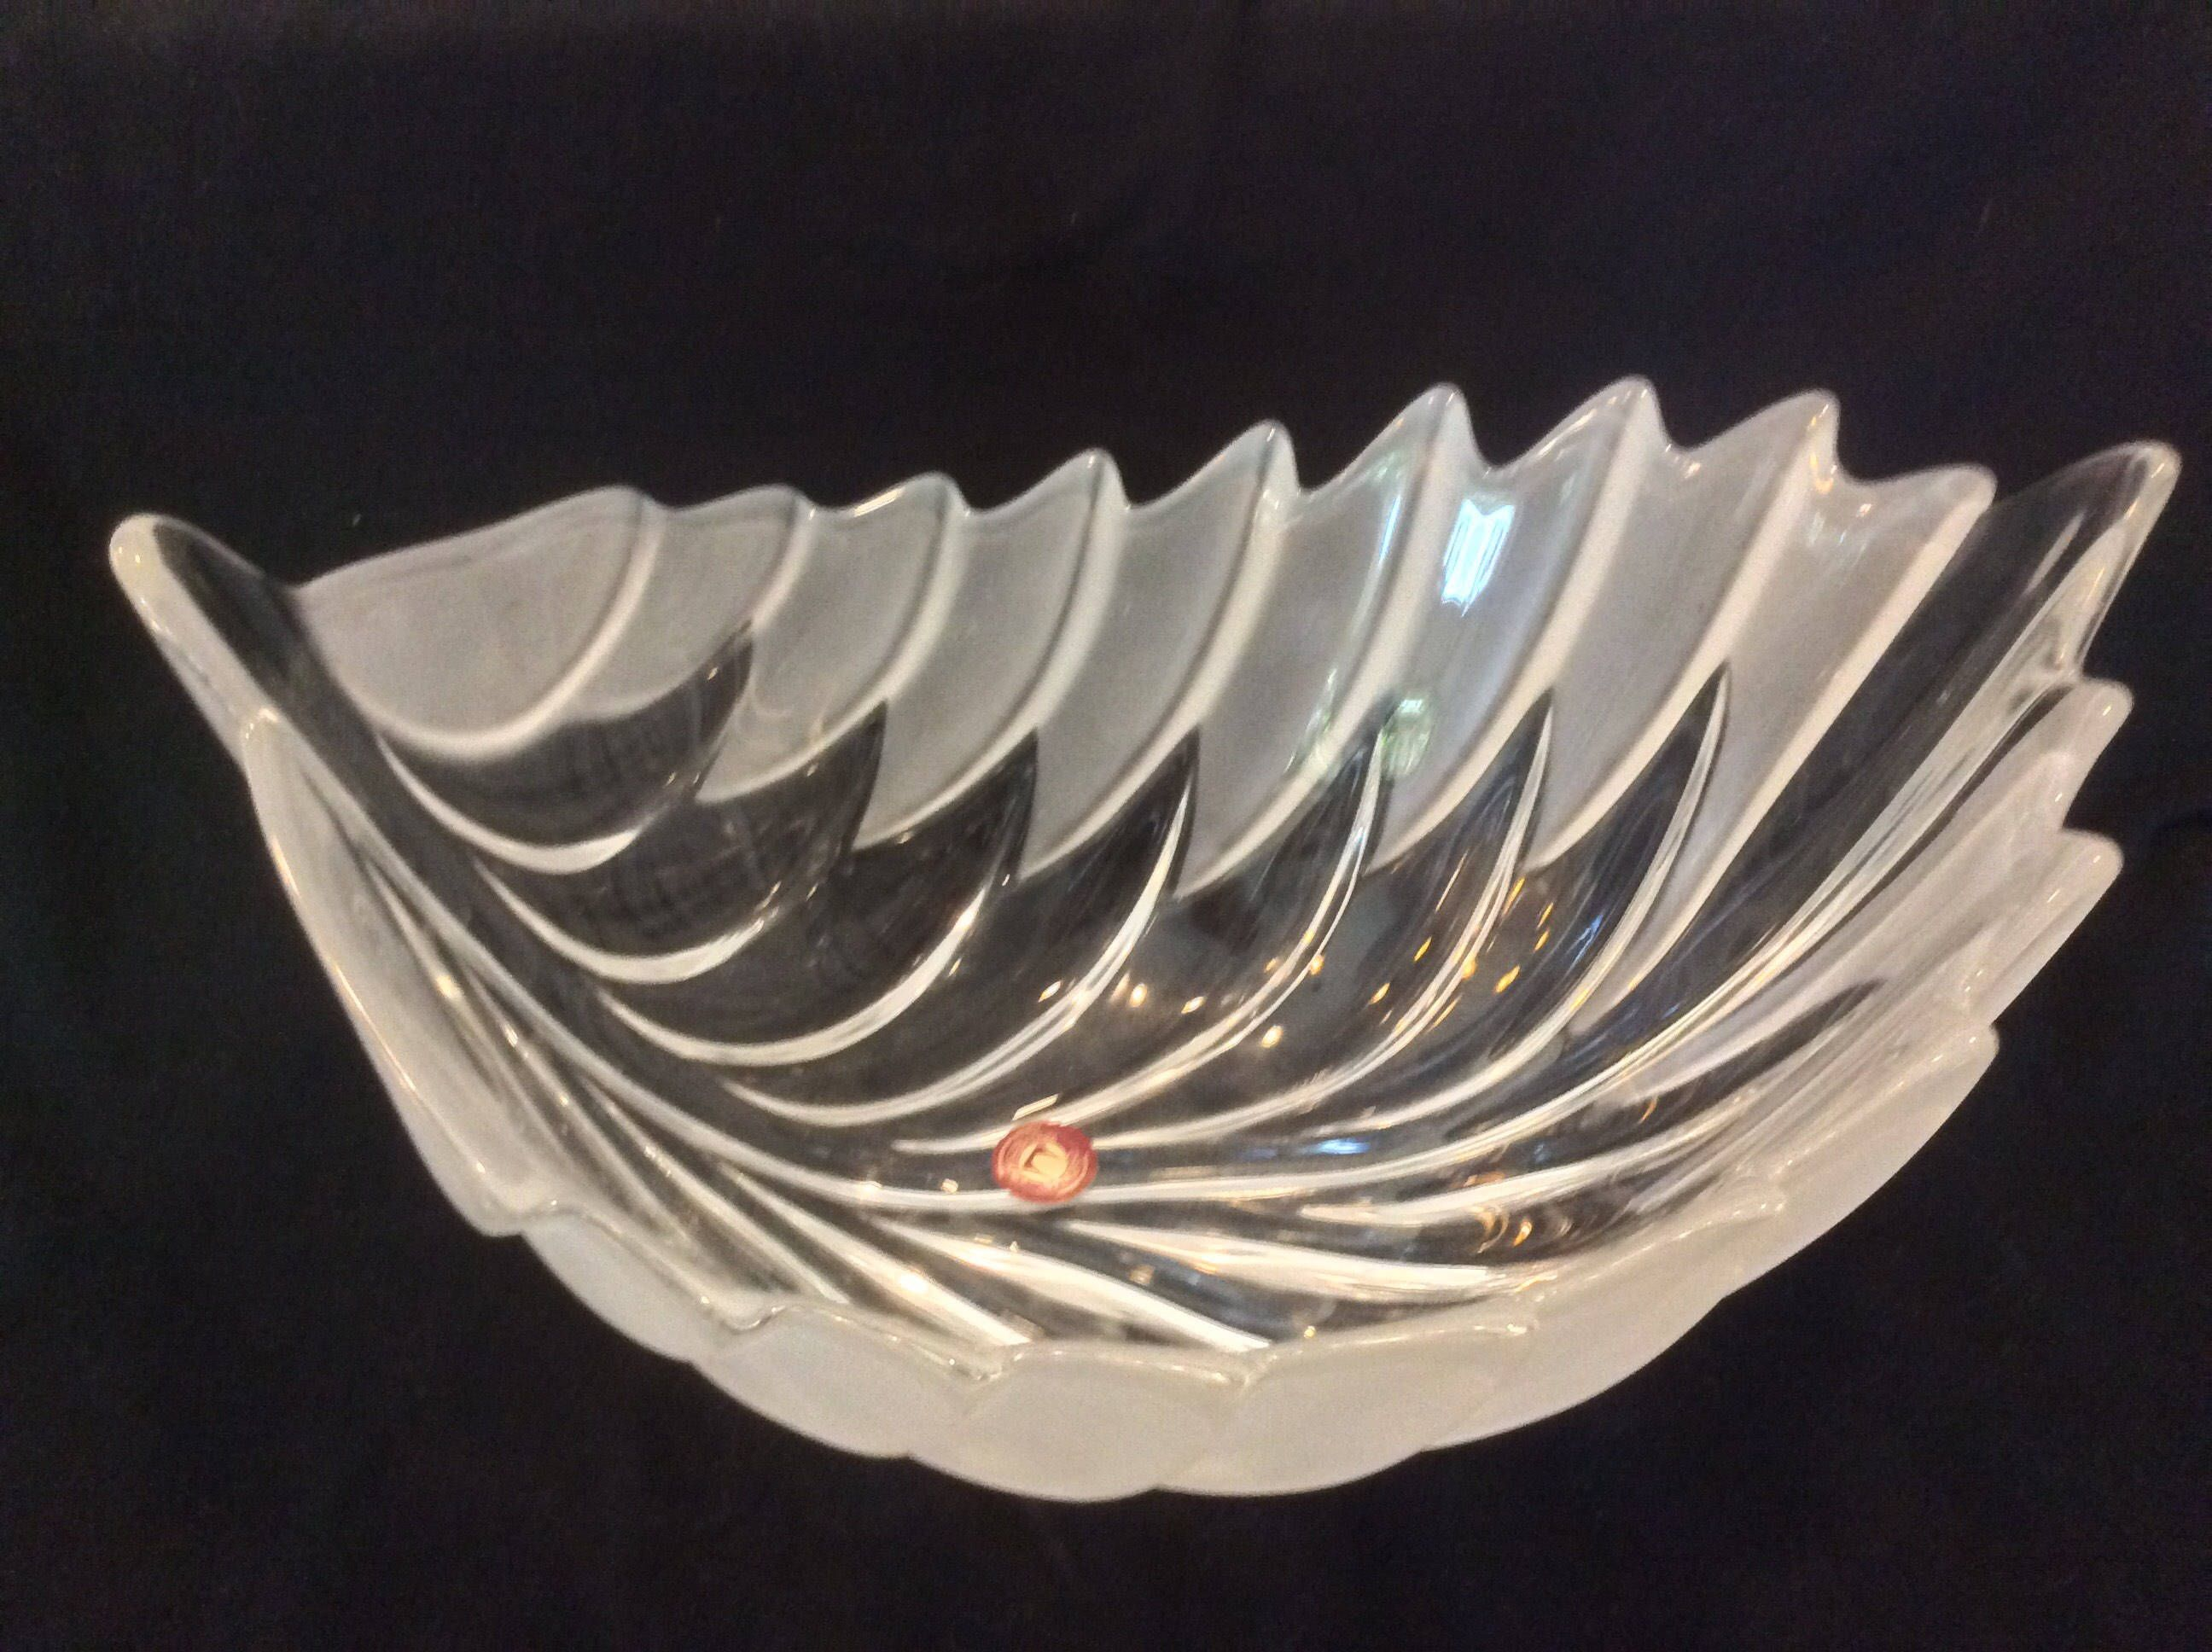 3 GLASS DECORATIVE BOWLS Other Items For Sale 1 Listings